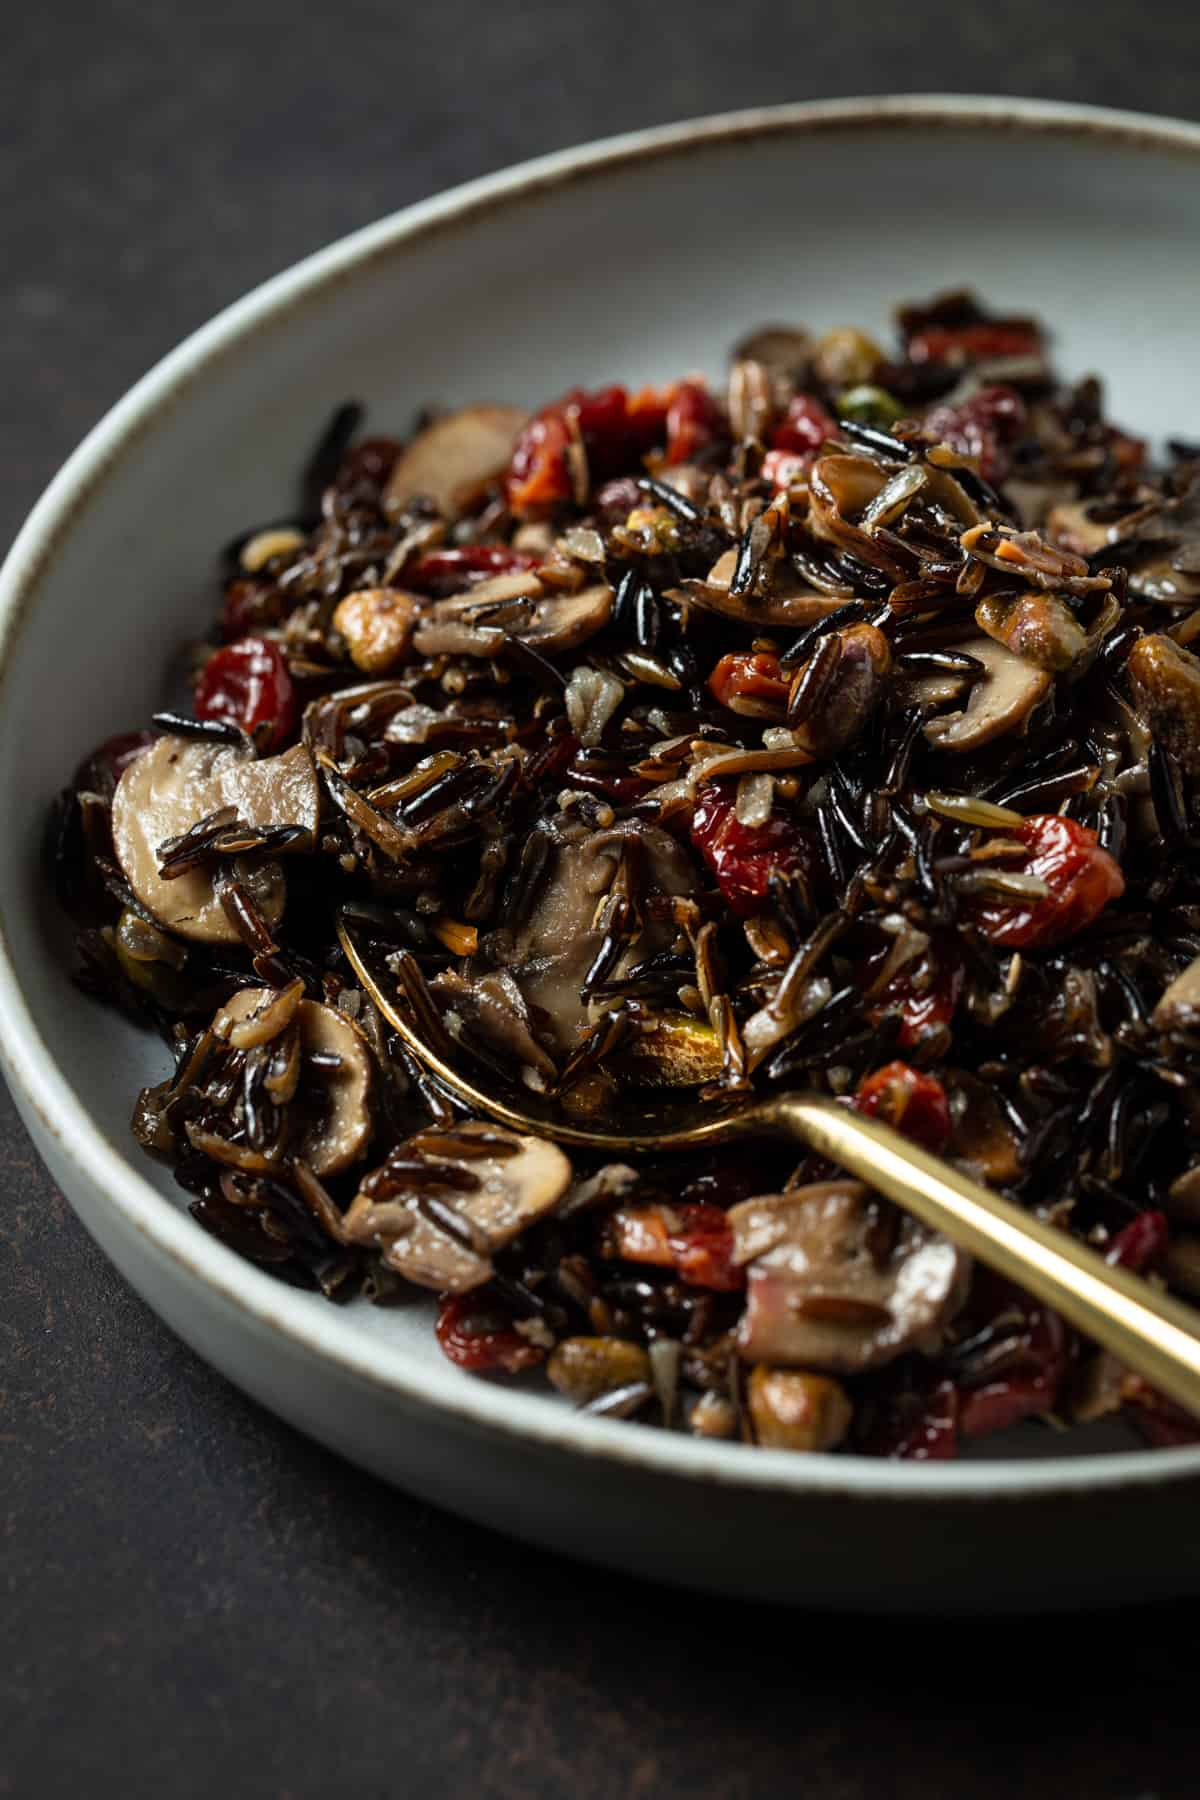 gray bowl filled with cooked wild rice, cherries, mushrooms & pistachios.